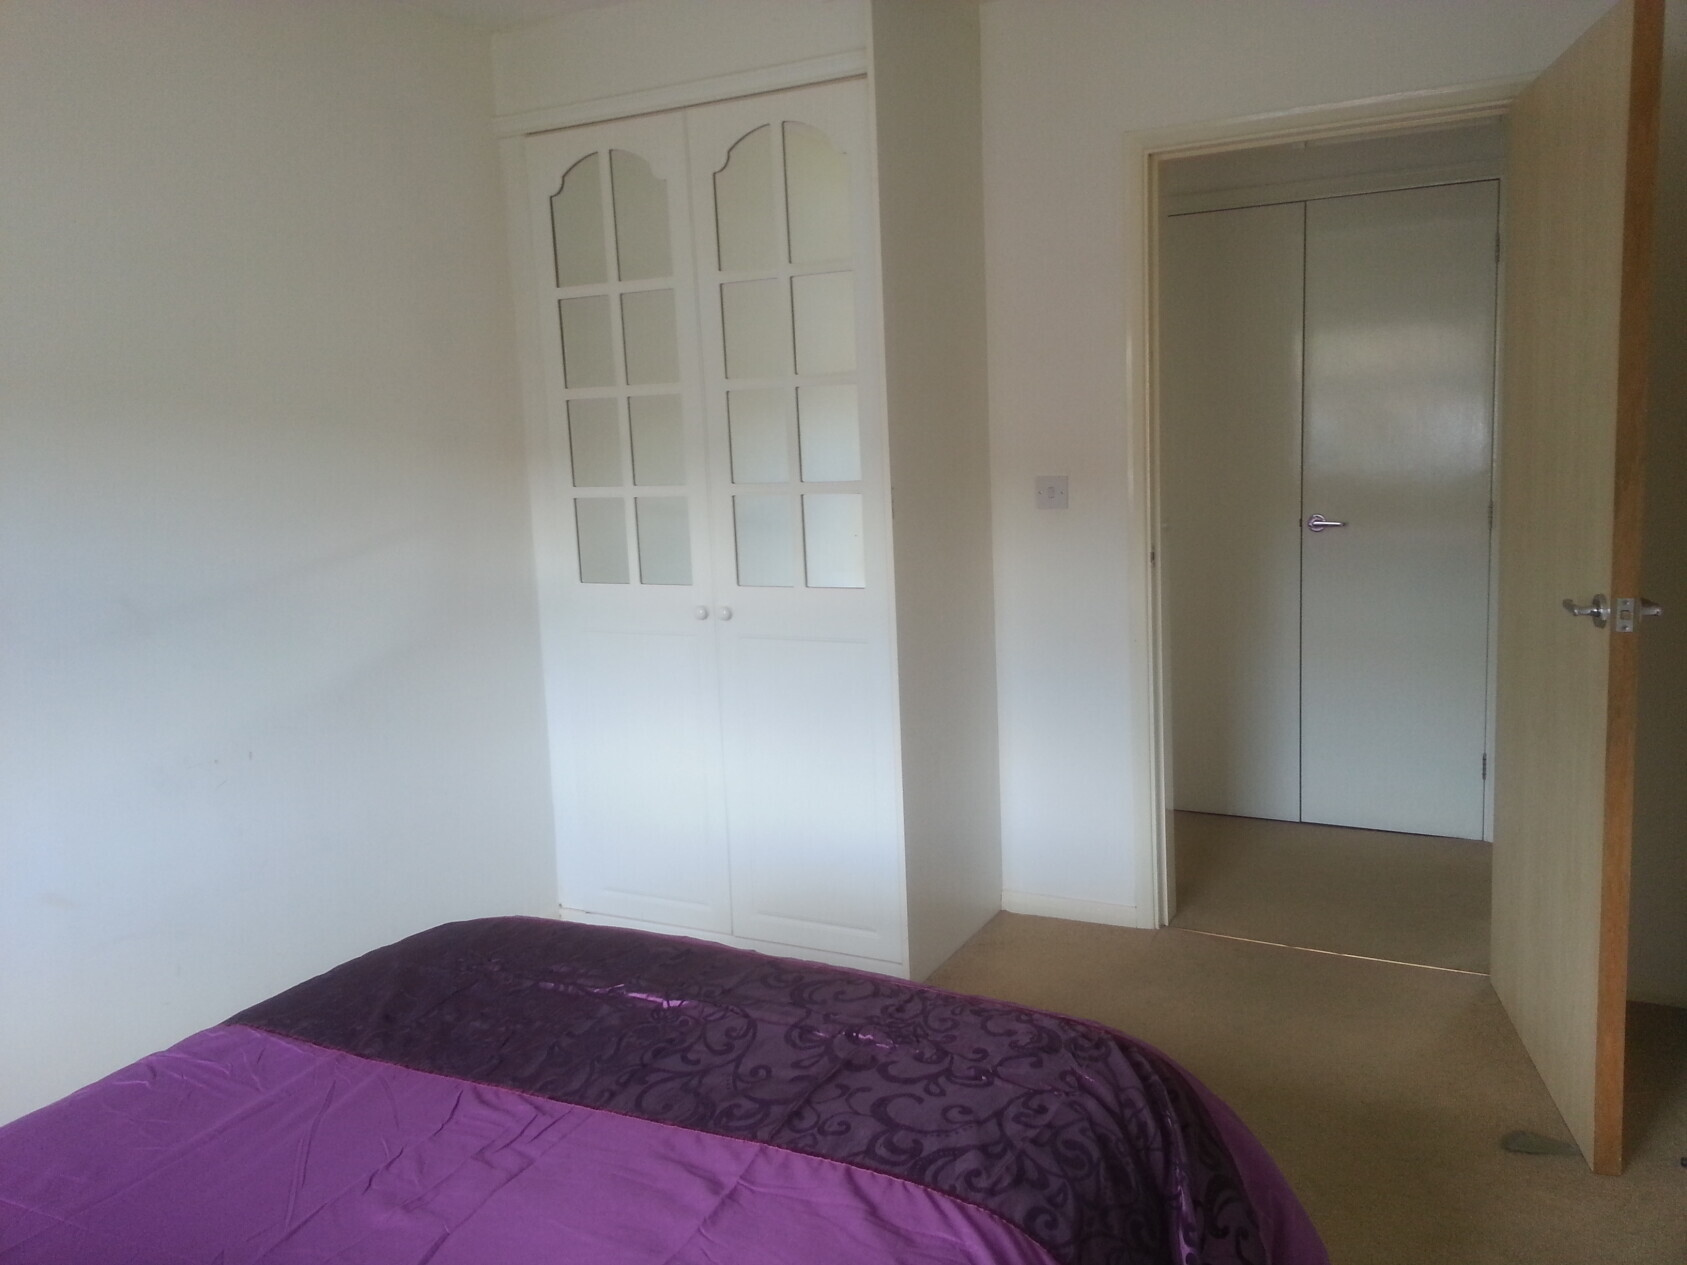 2 bedroom student apartment in City Centre, Coventry